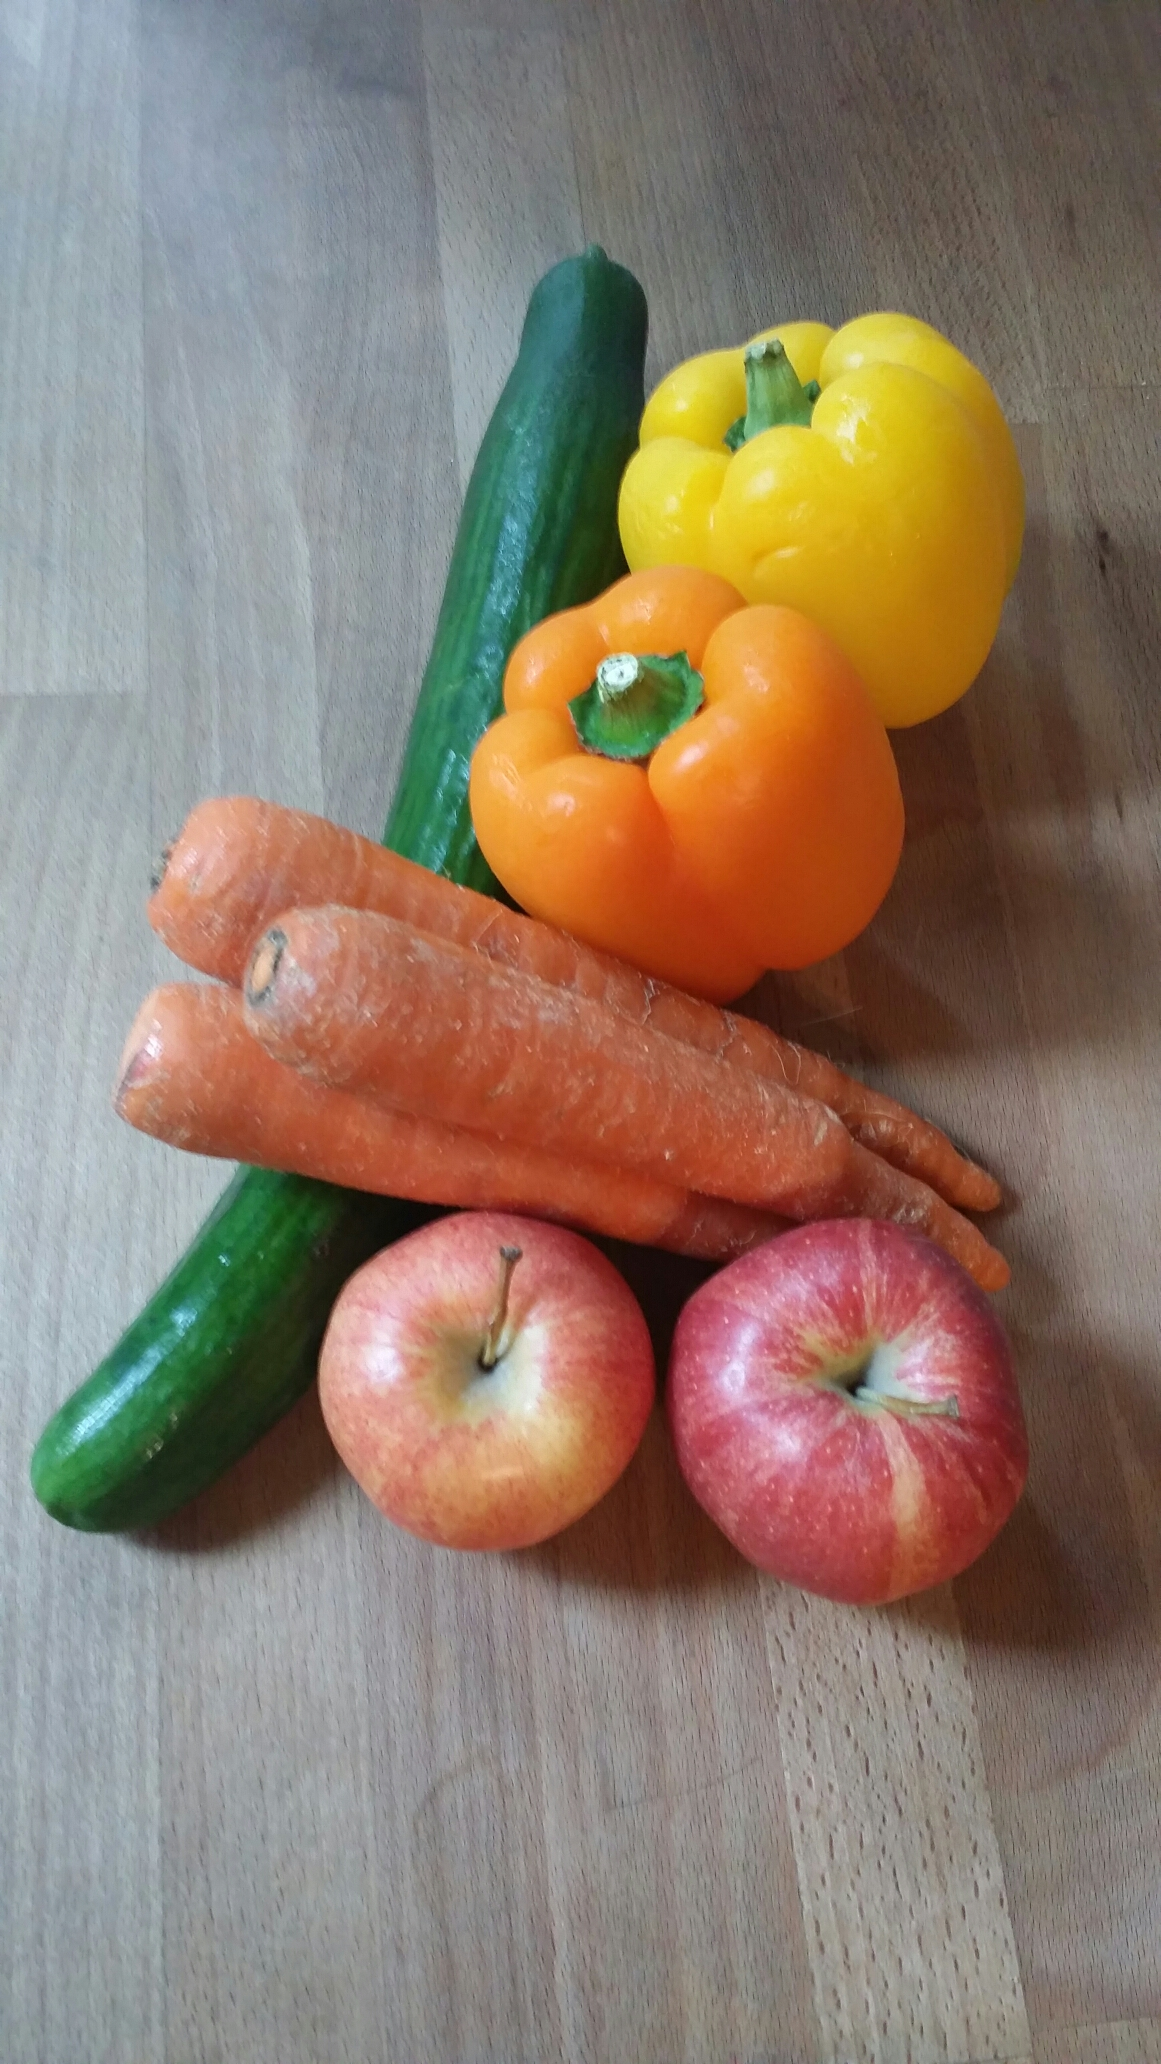 Fruit and Veggies